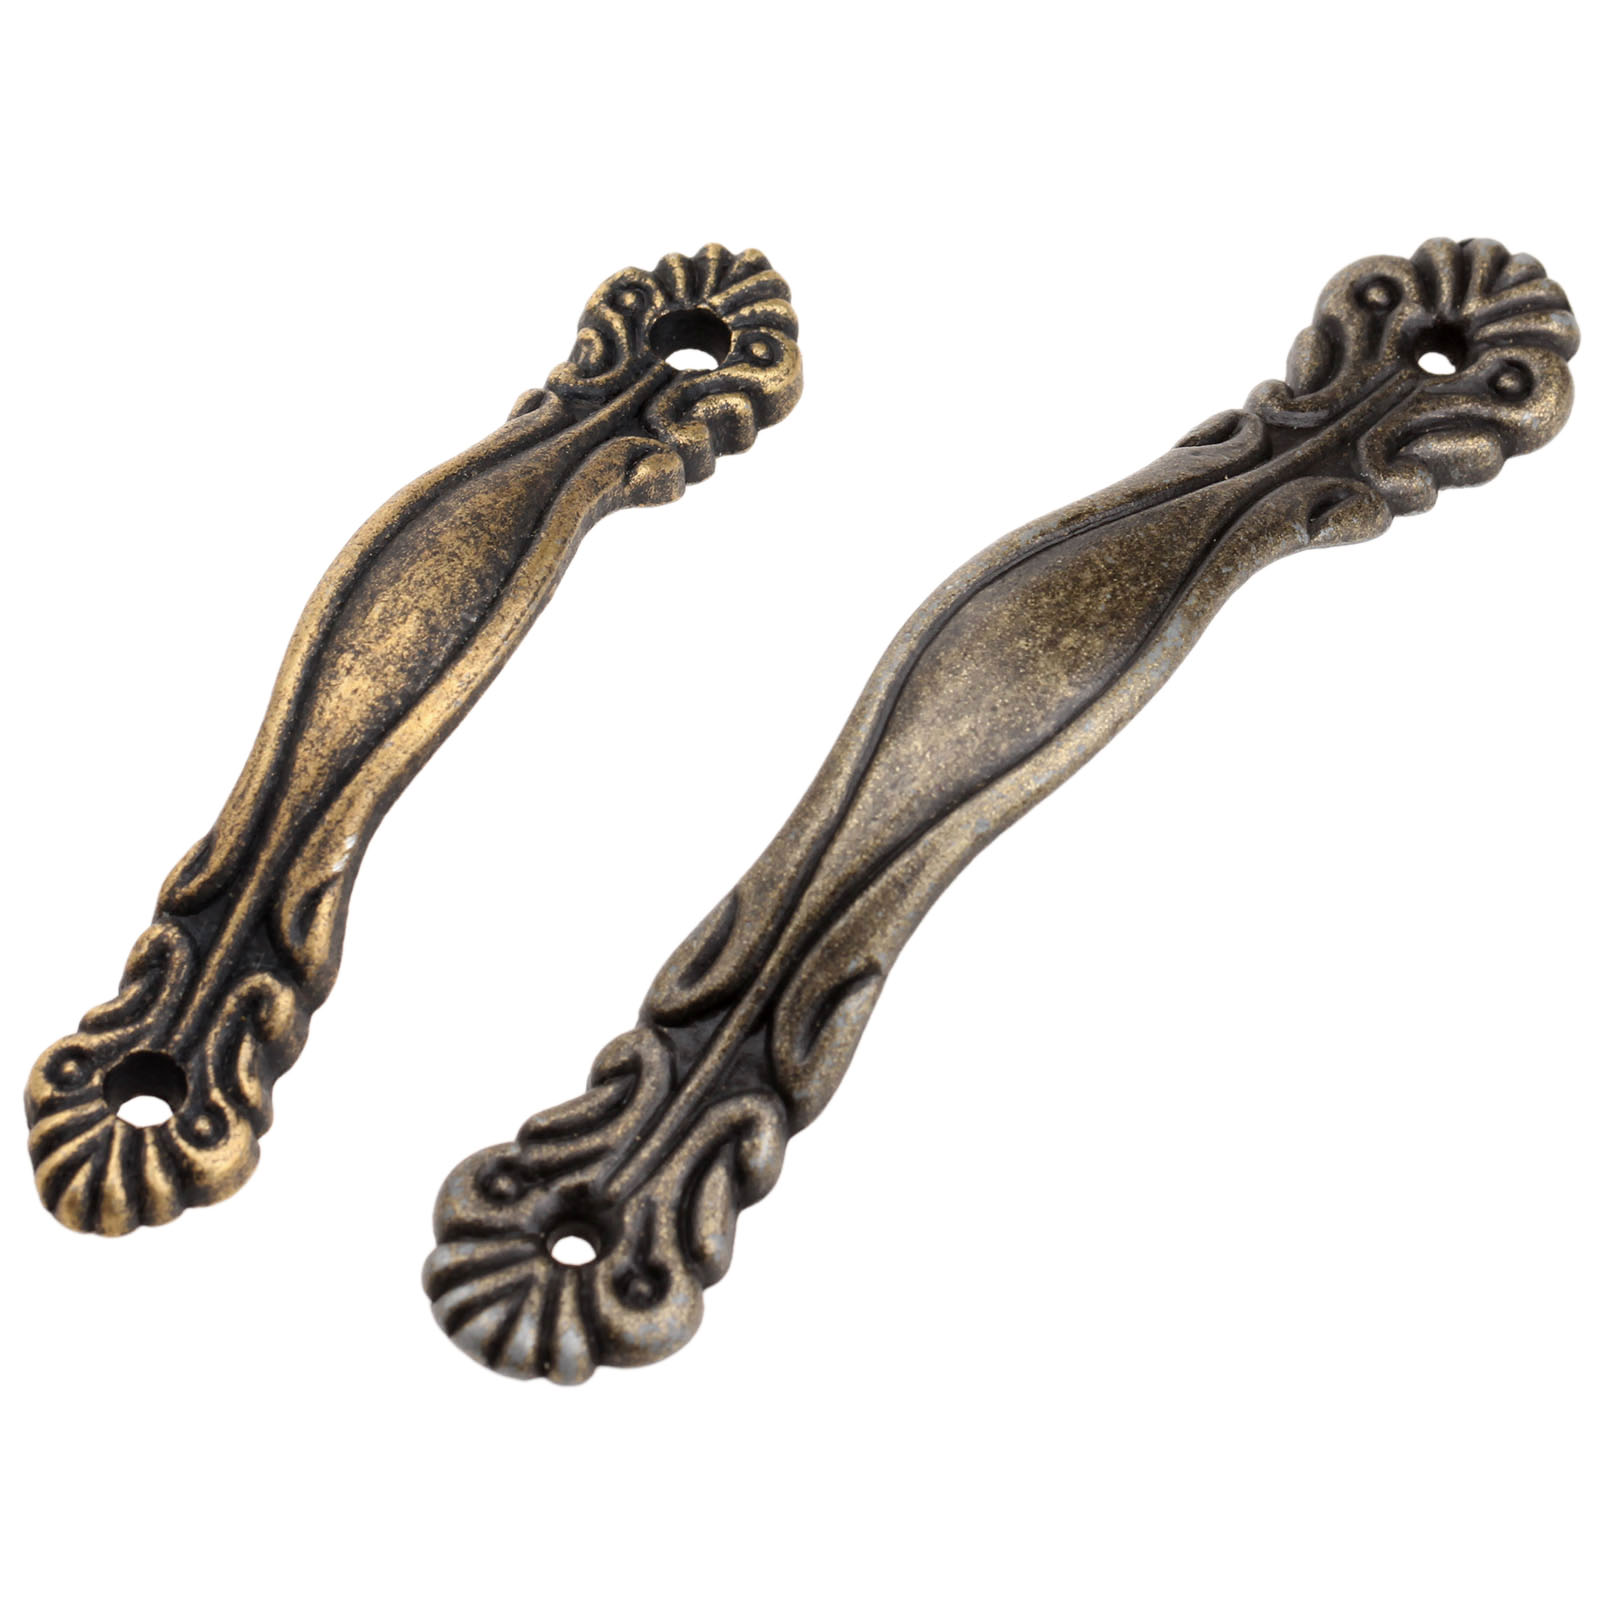 Antique Brass Cabinet Knobs And Handles Furniture Knobs